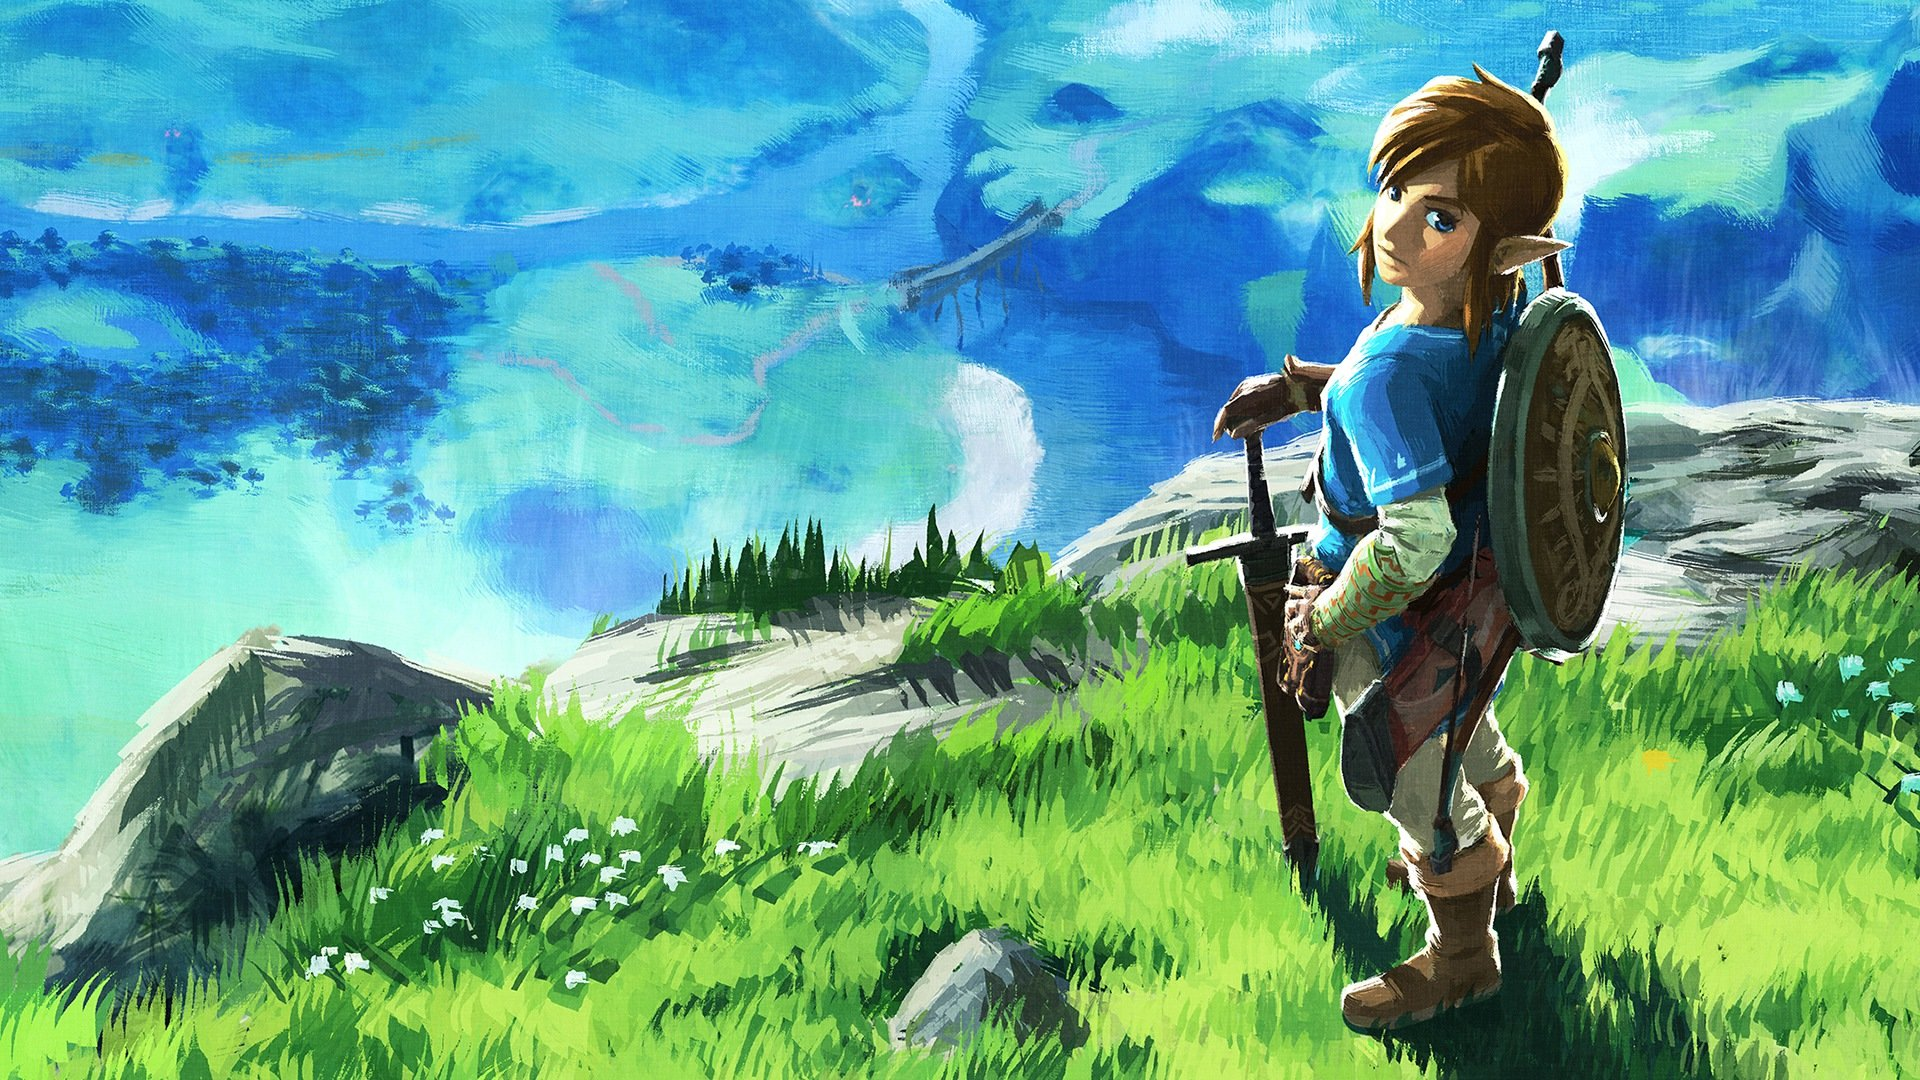 The Legend Of Zelda Wallpapers 1920x1080 Full Hd 1080p Desktop